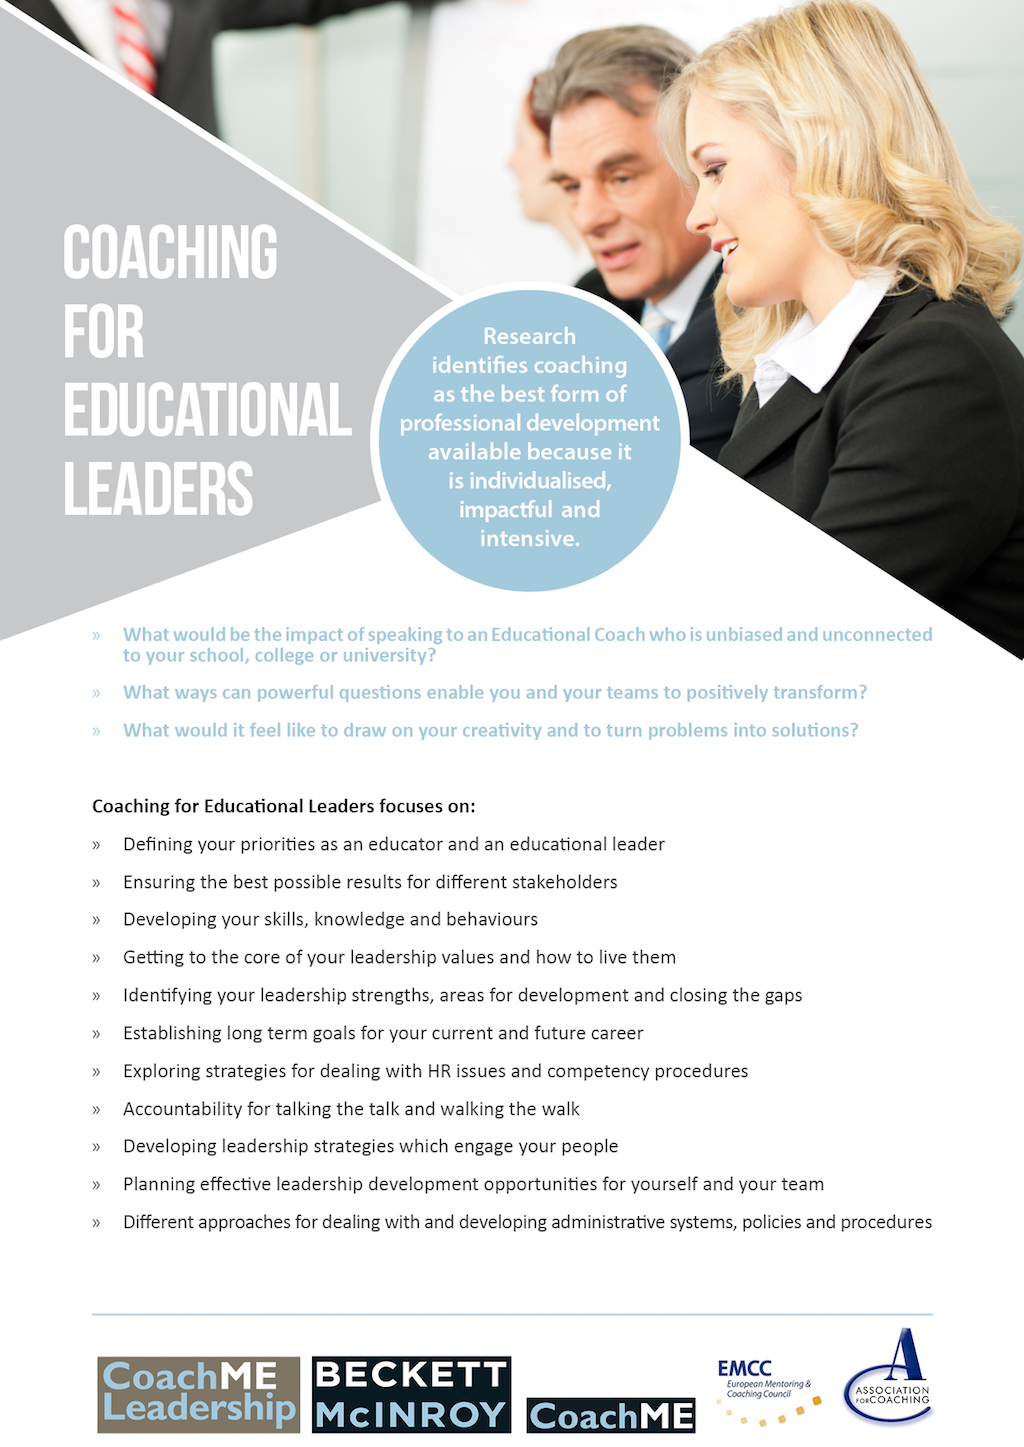 Coaching for Educational Leaders